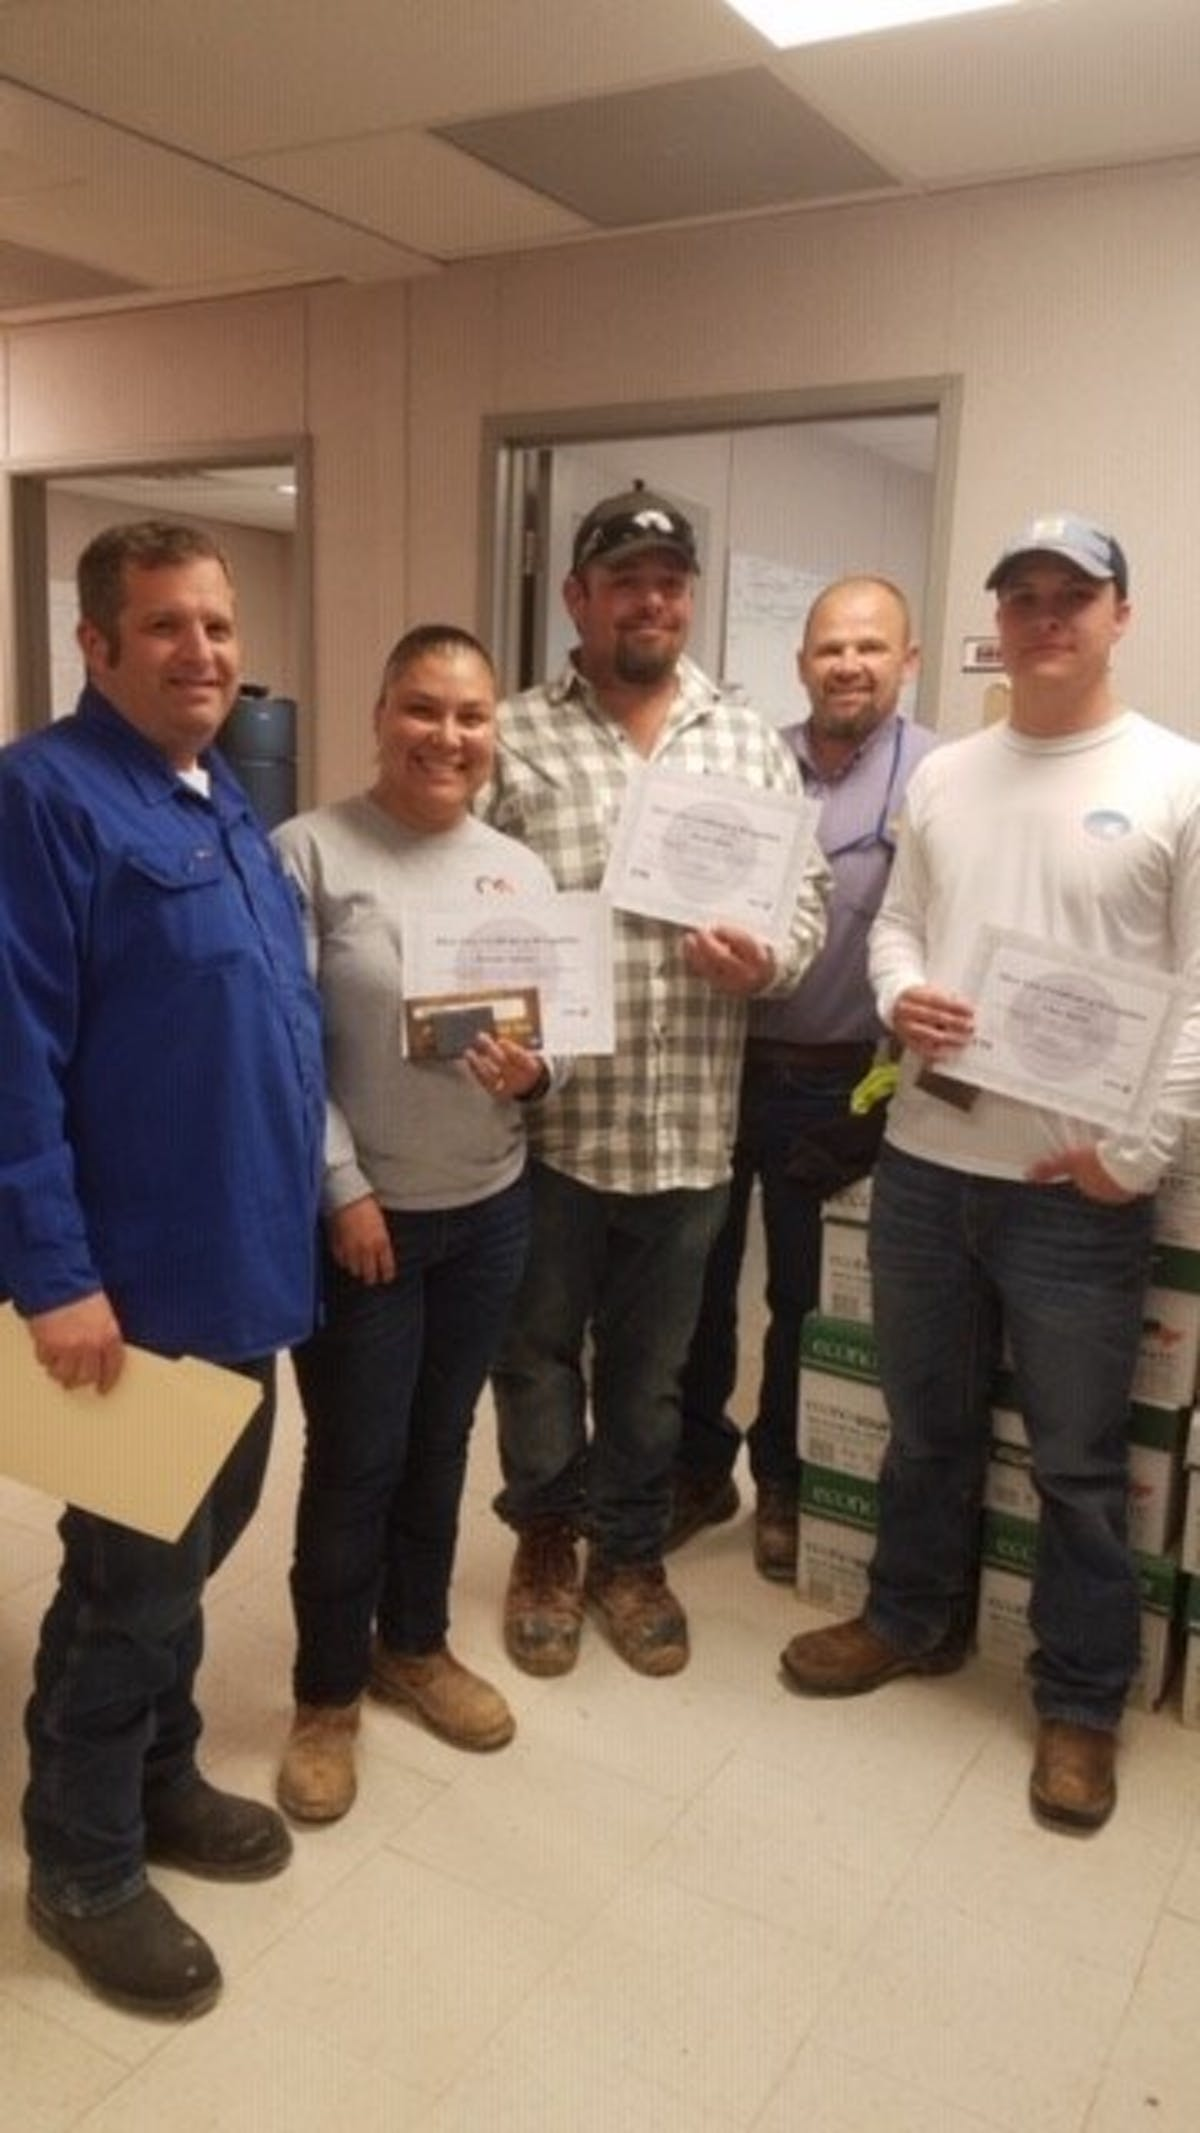 Pictured (l-r) MMR HSE Manager Daryl Henderson, MMR Foreman Brenda Narvaez, MMR Tech David Hicks, Sasol Site Manager Chris Frasier, MMR Tech Chae Burns